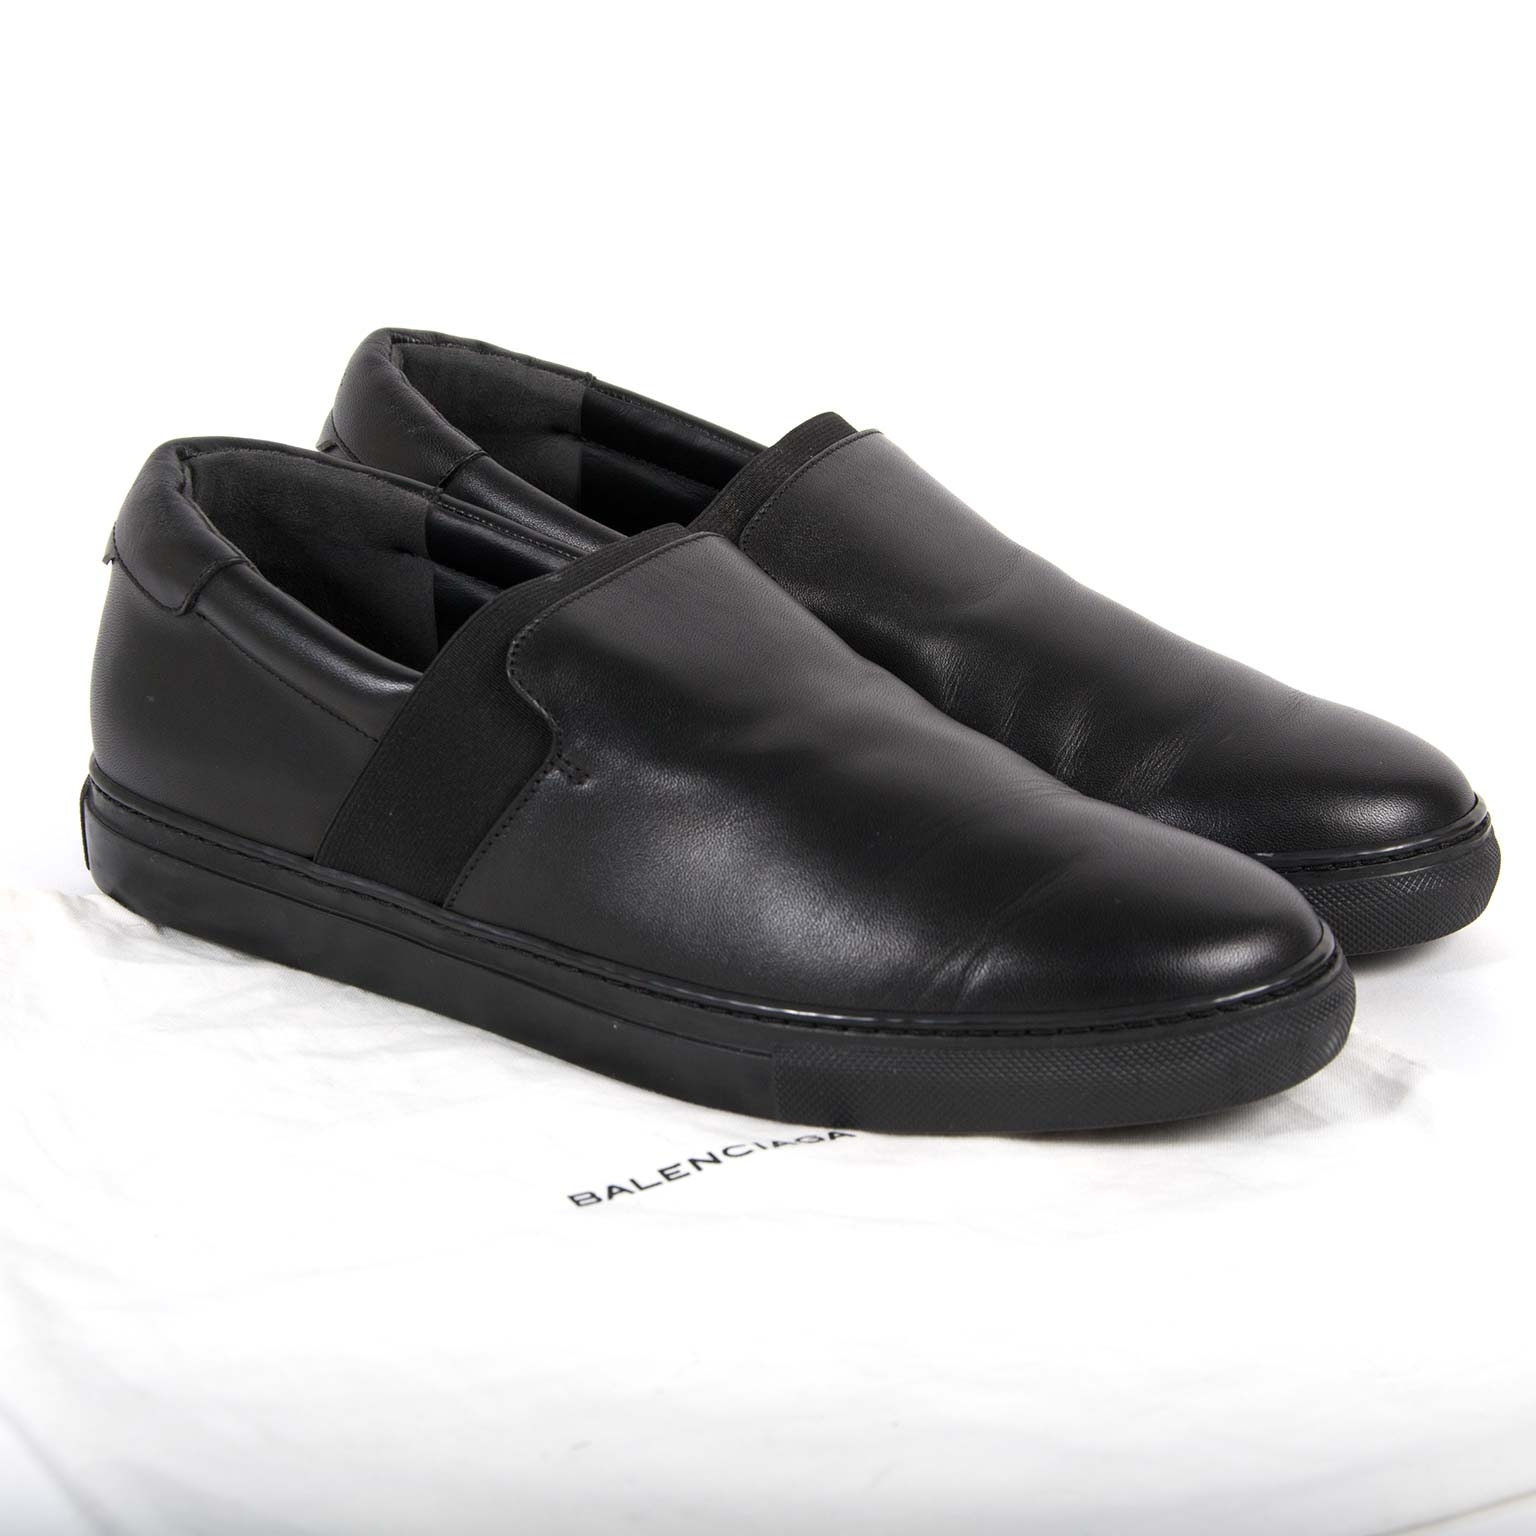 balenciaga black leather slip-on sneakers now for sale at labellov vintage fashion webshop belgium